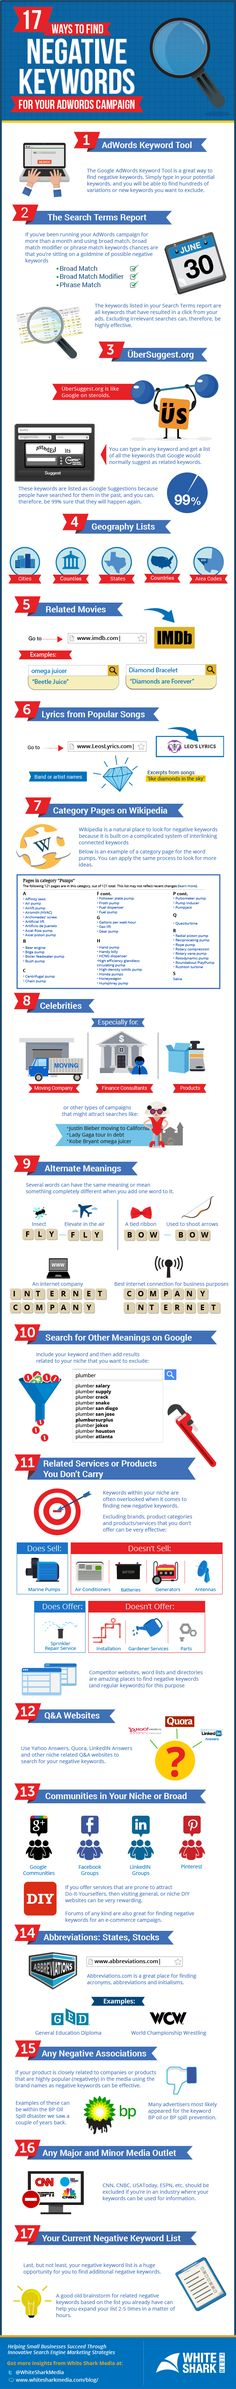 17 Ways To Find Negative Keywords For Your AdWords Campaign #infographic #Advertising #Adwords